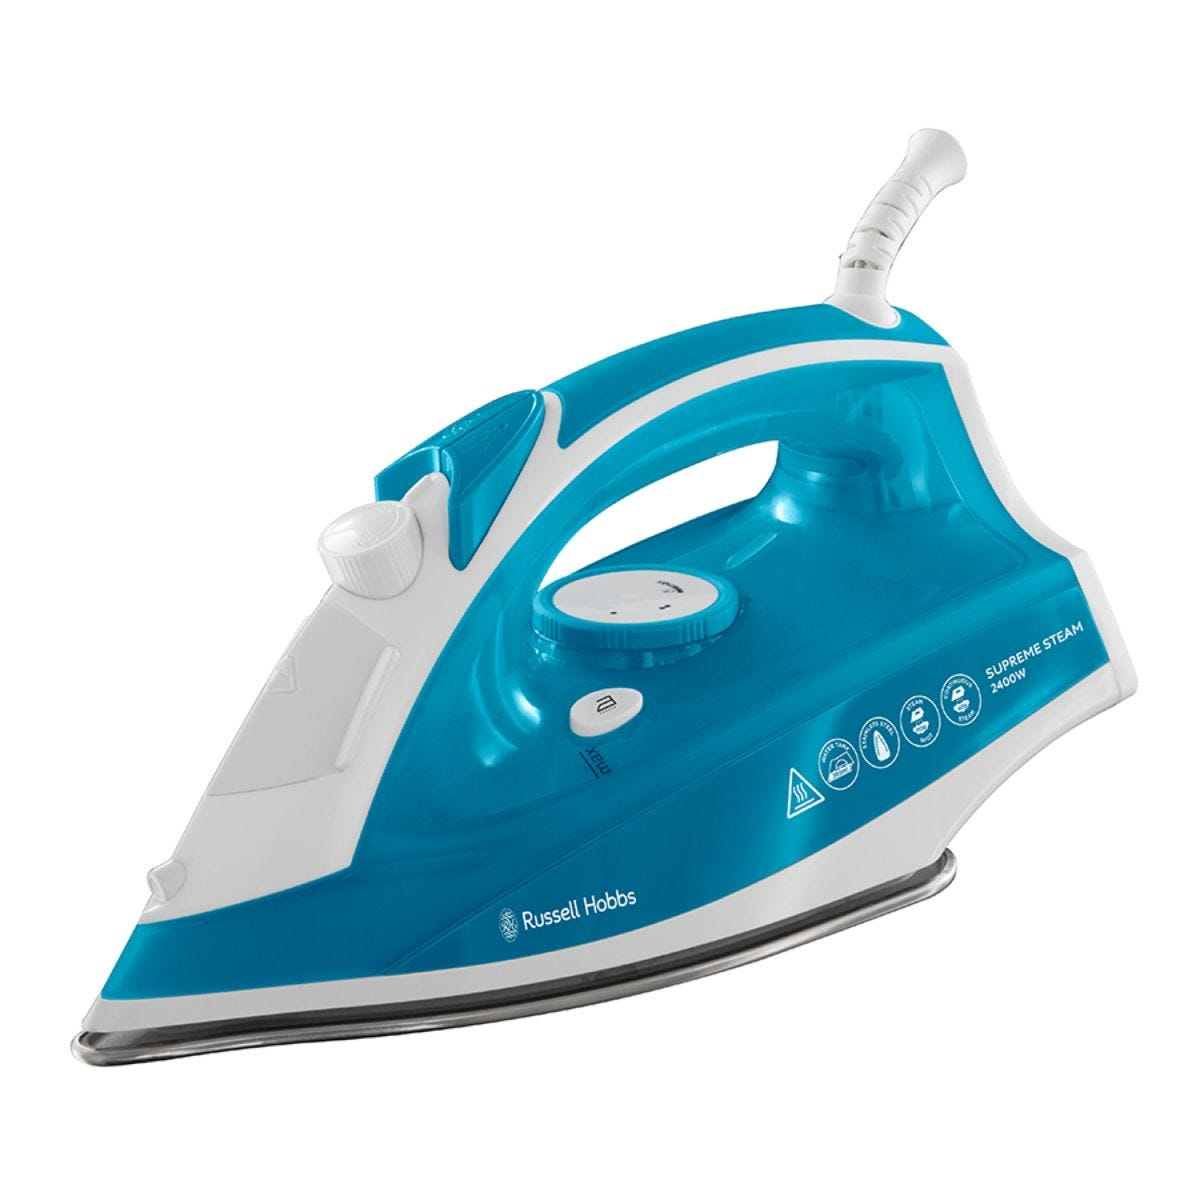 Russell Hobbs 23061 Supreme Steam 2400W Traditional Iron – Blue